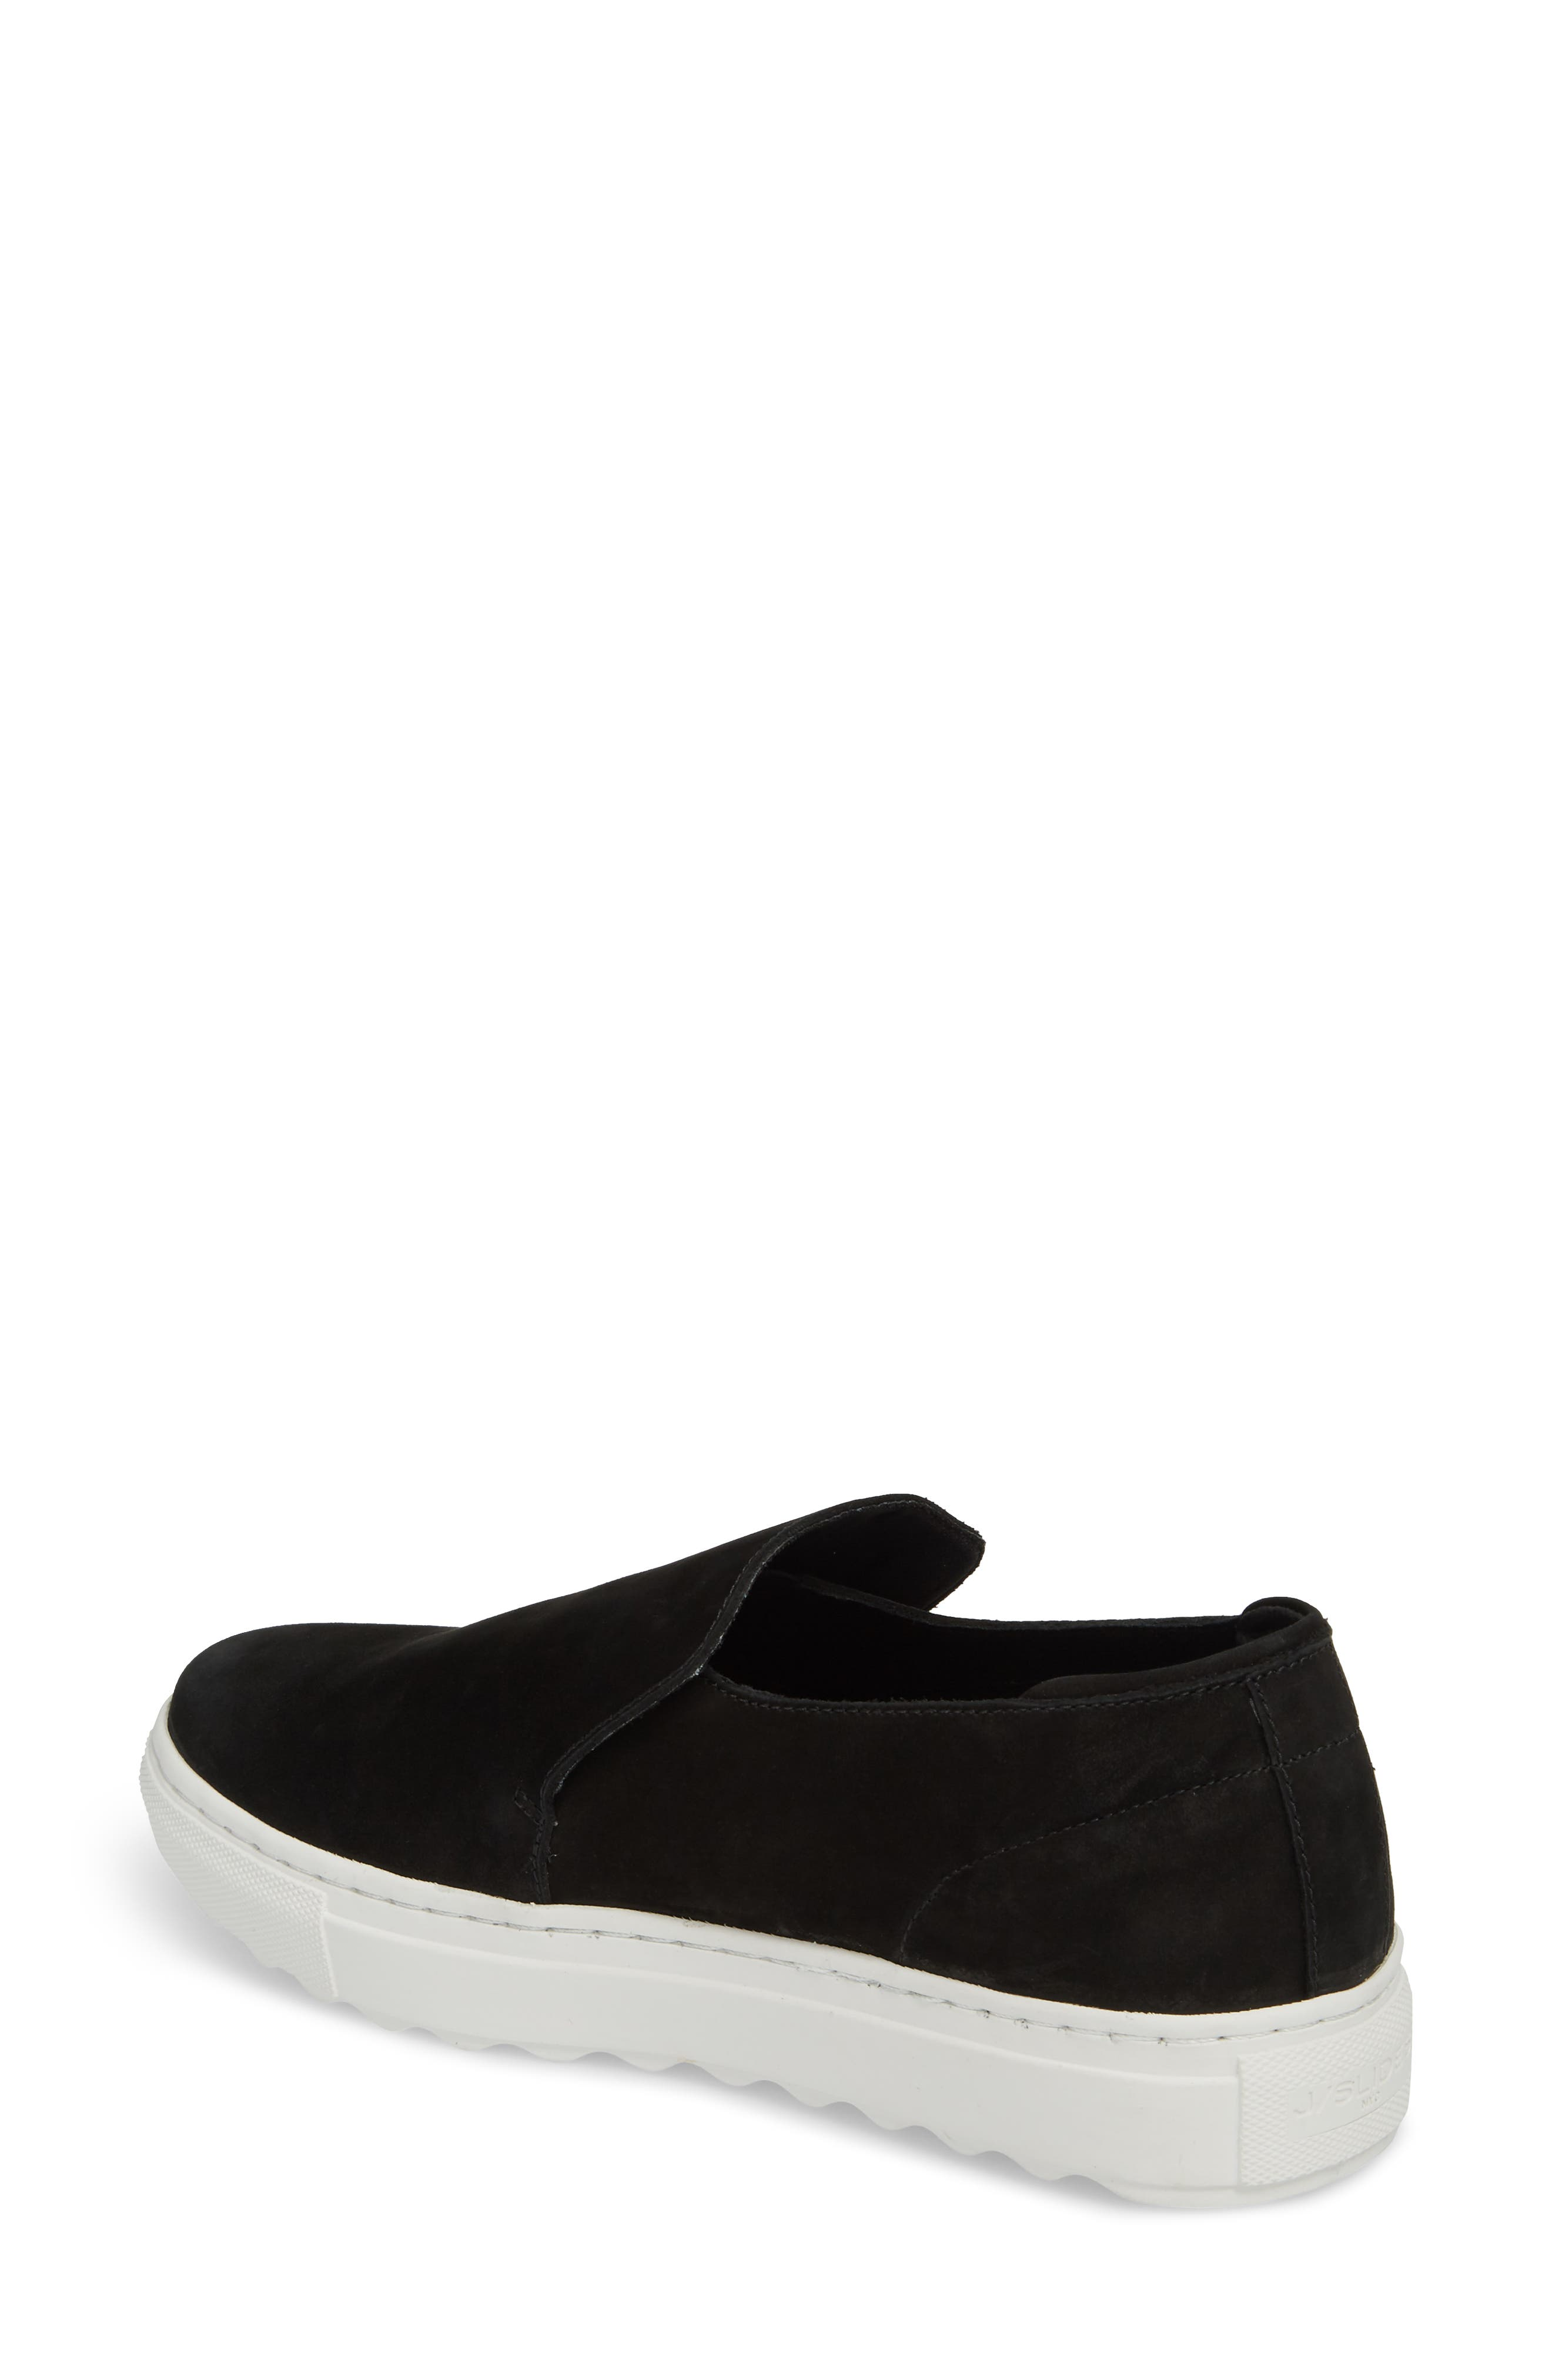 Perrie Platform Slip-On,                             Alternate thumbnail 2, color,                             001